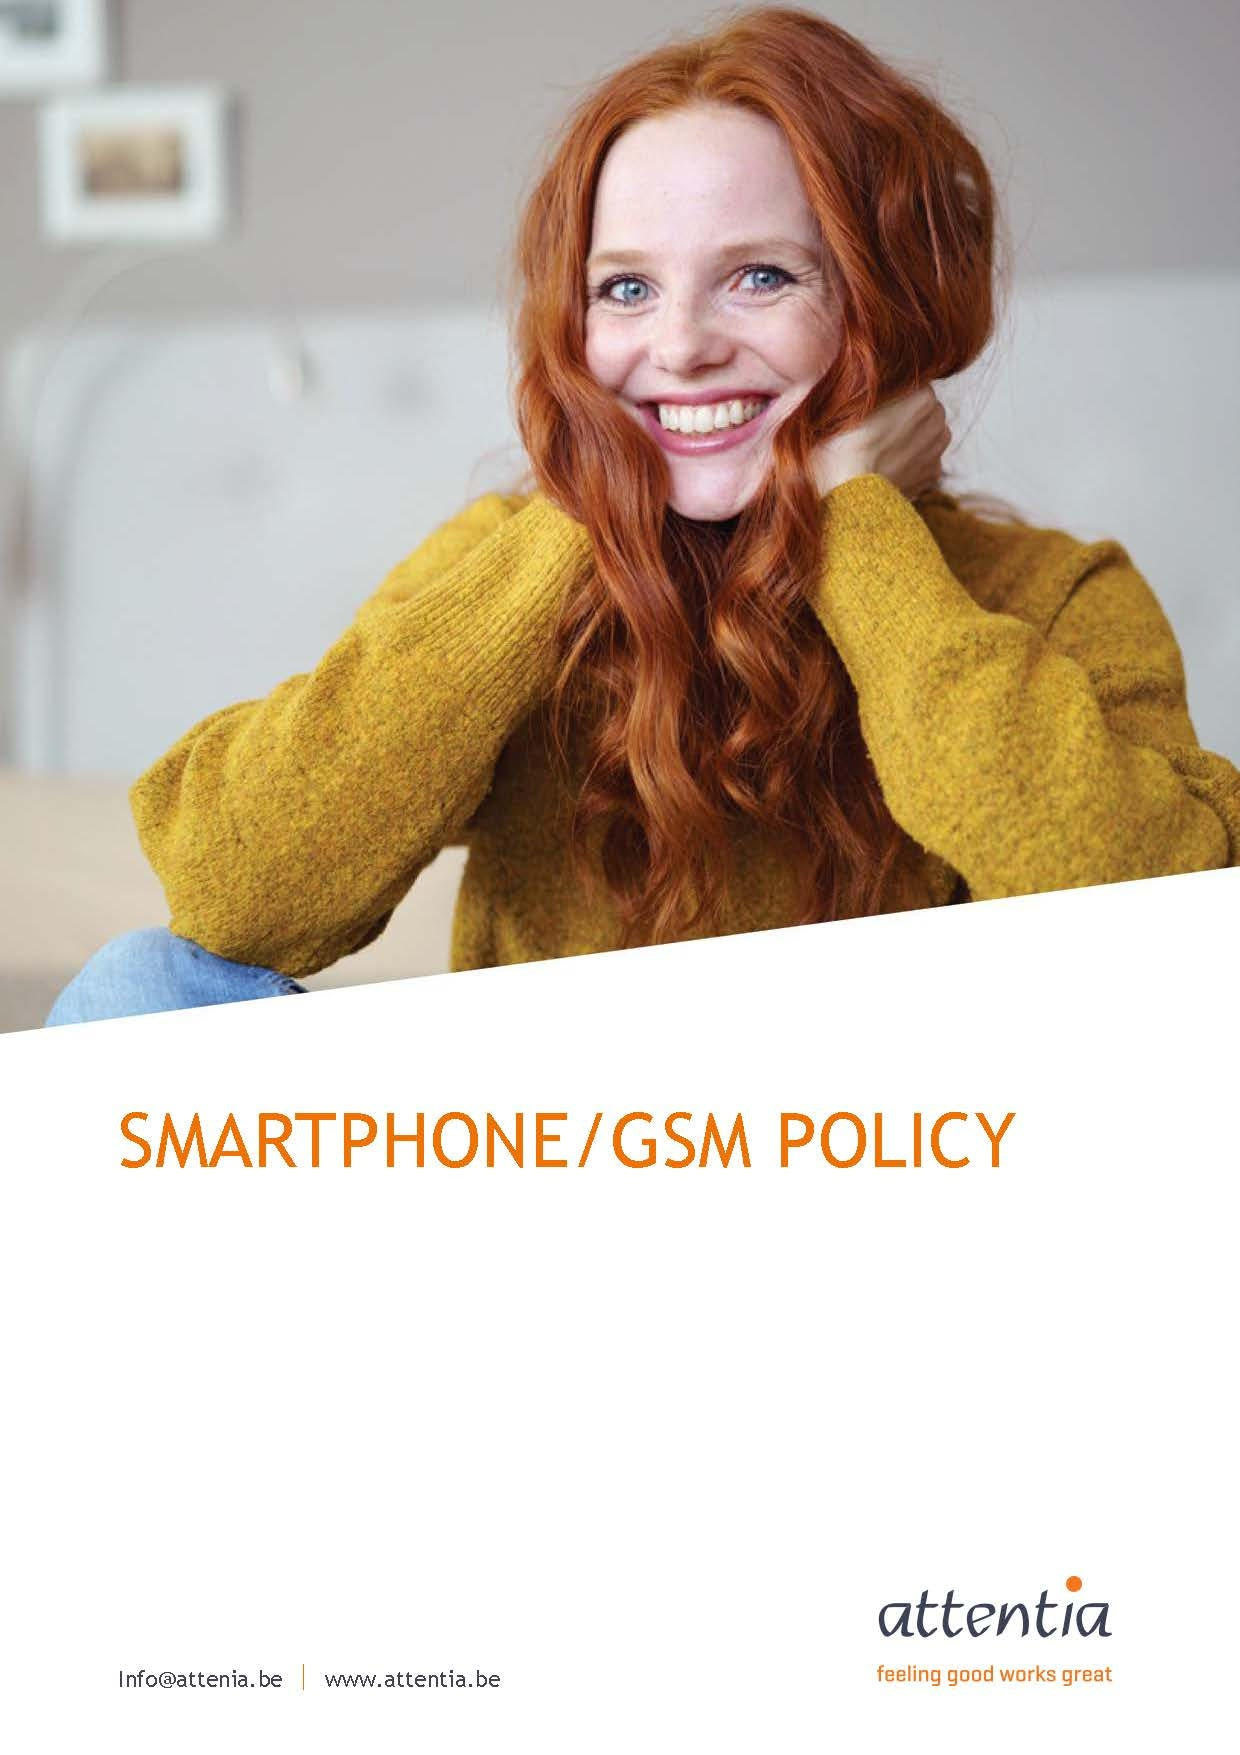 Smartphone/gsm policy